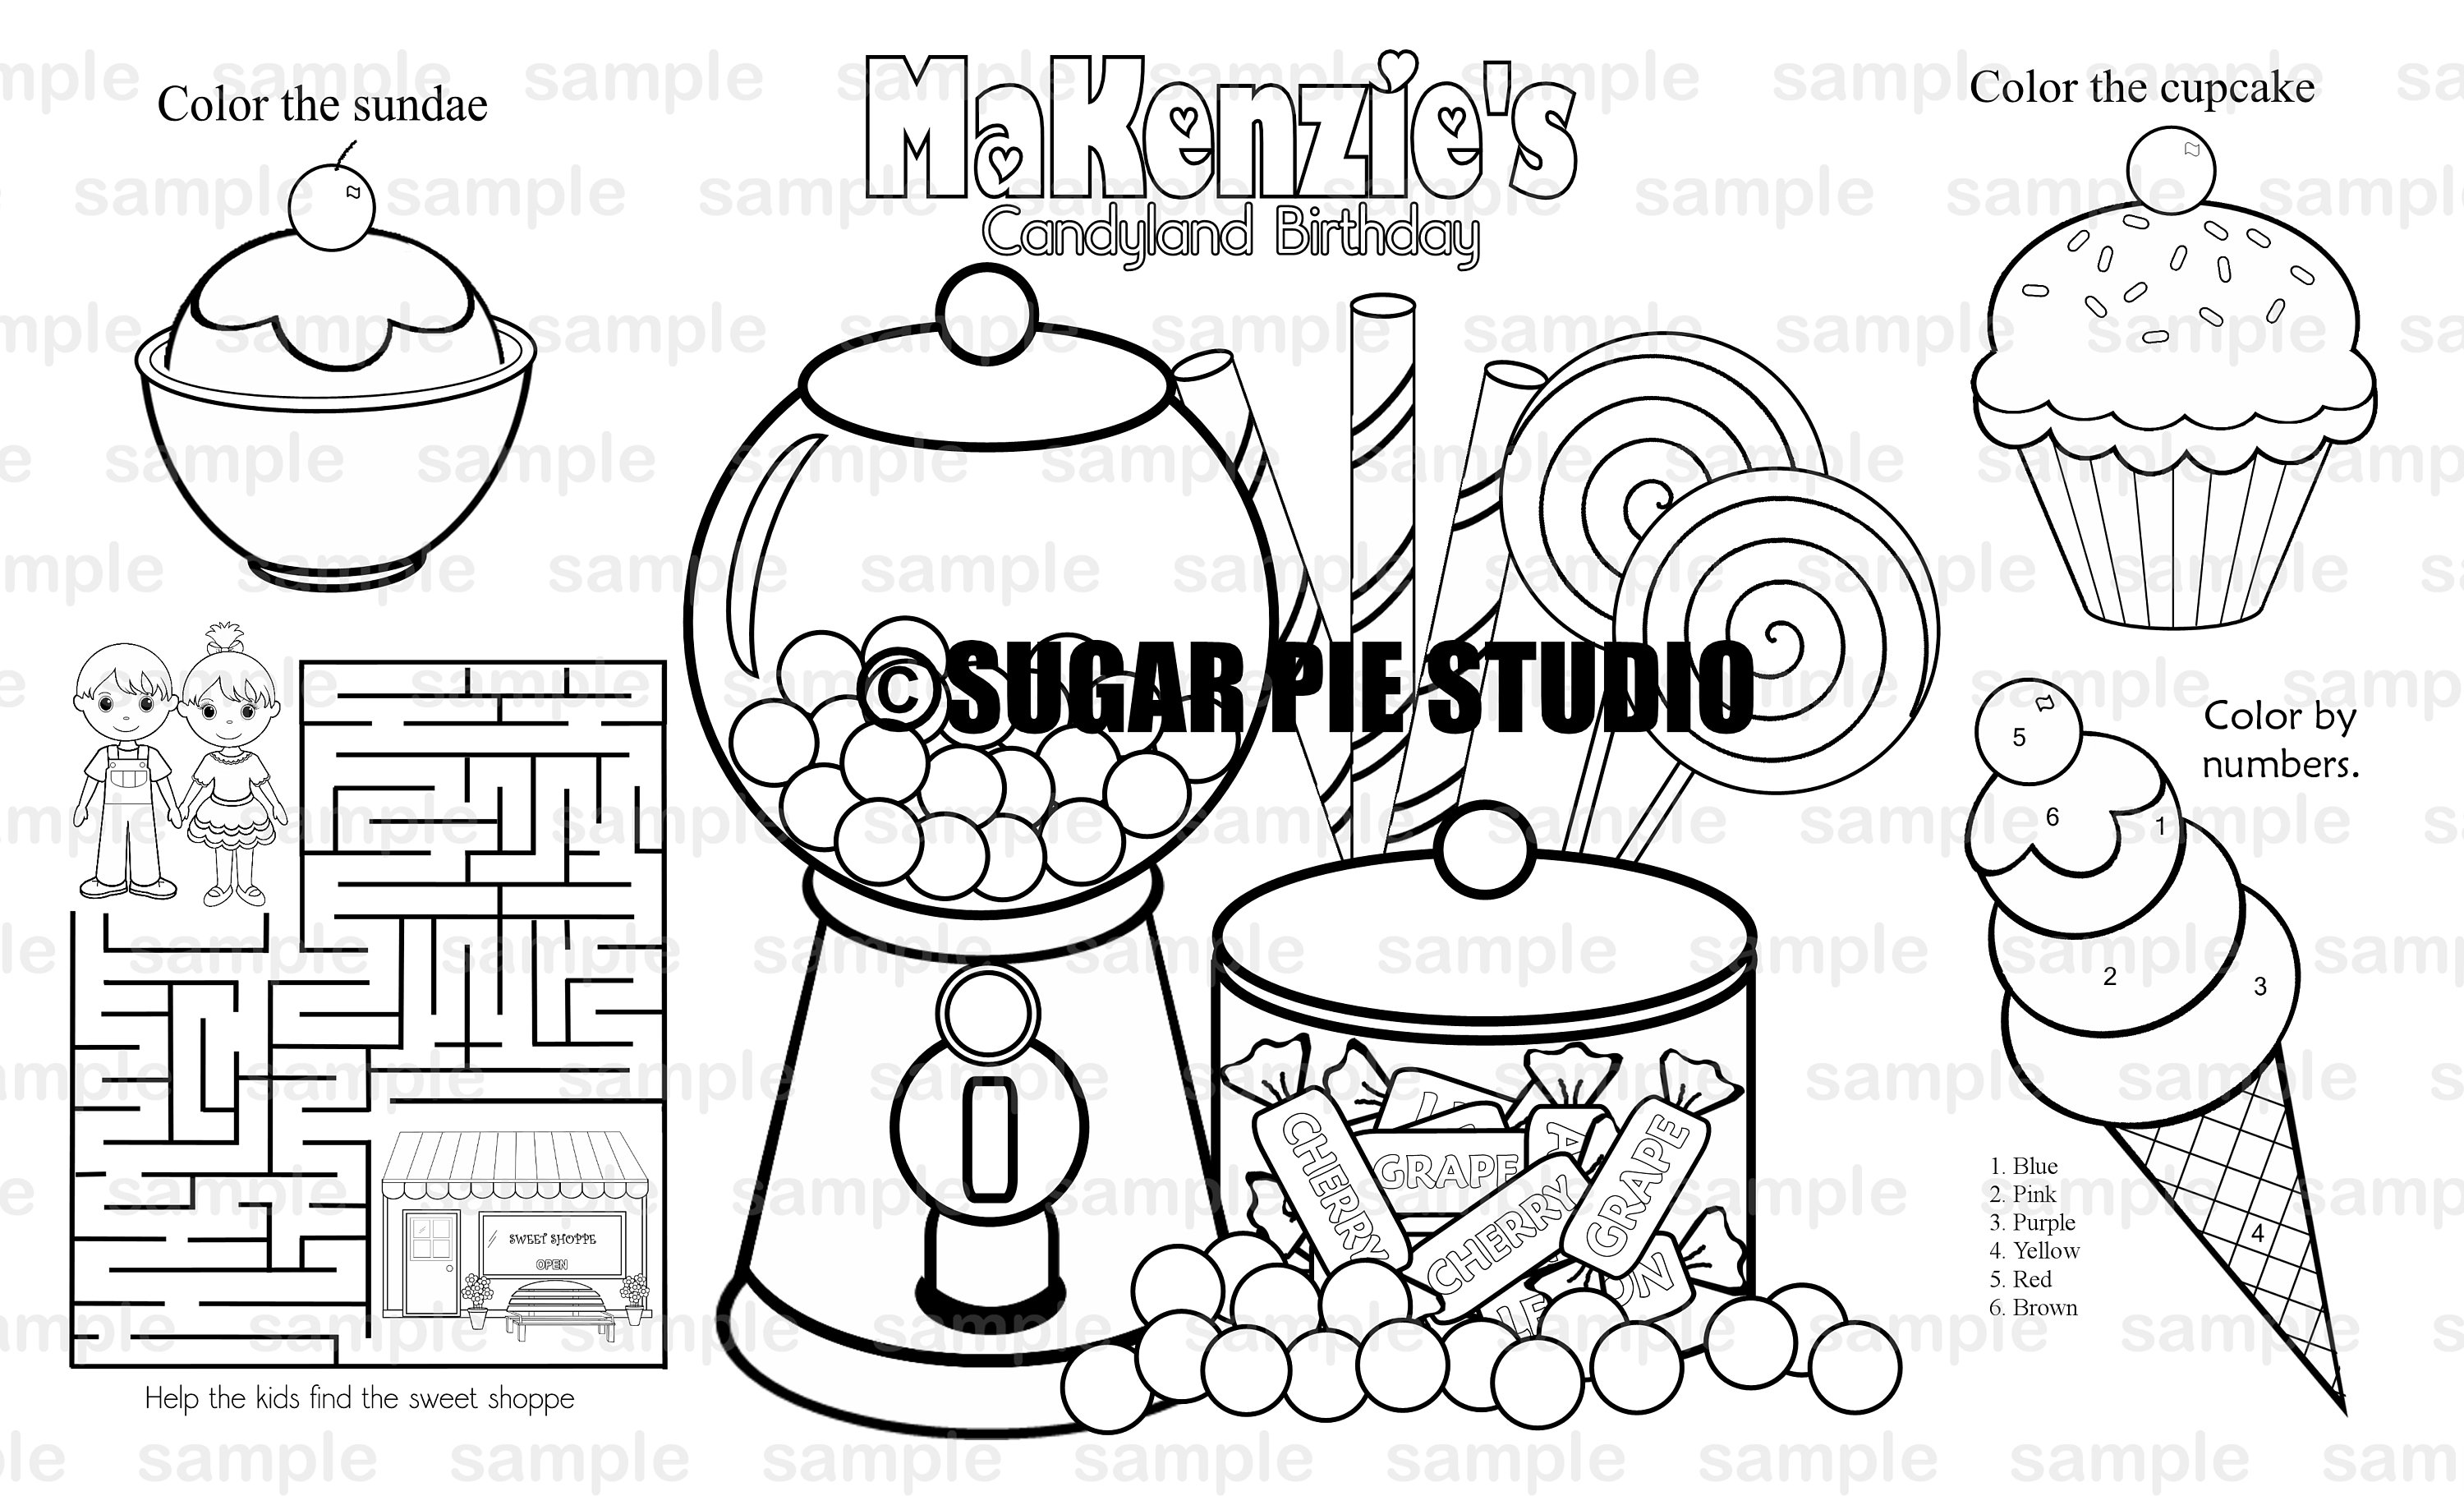 Printable Personalized Sweet Shoppe Candy Shop Candy Land Favor